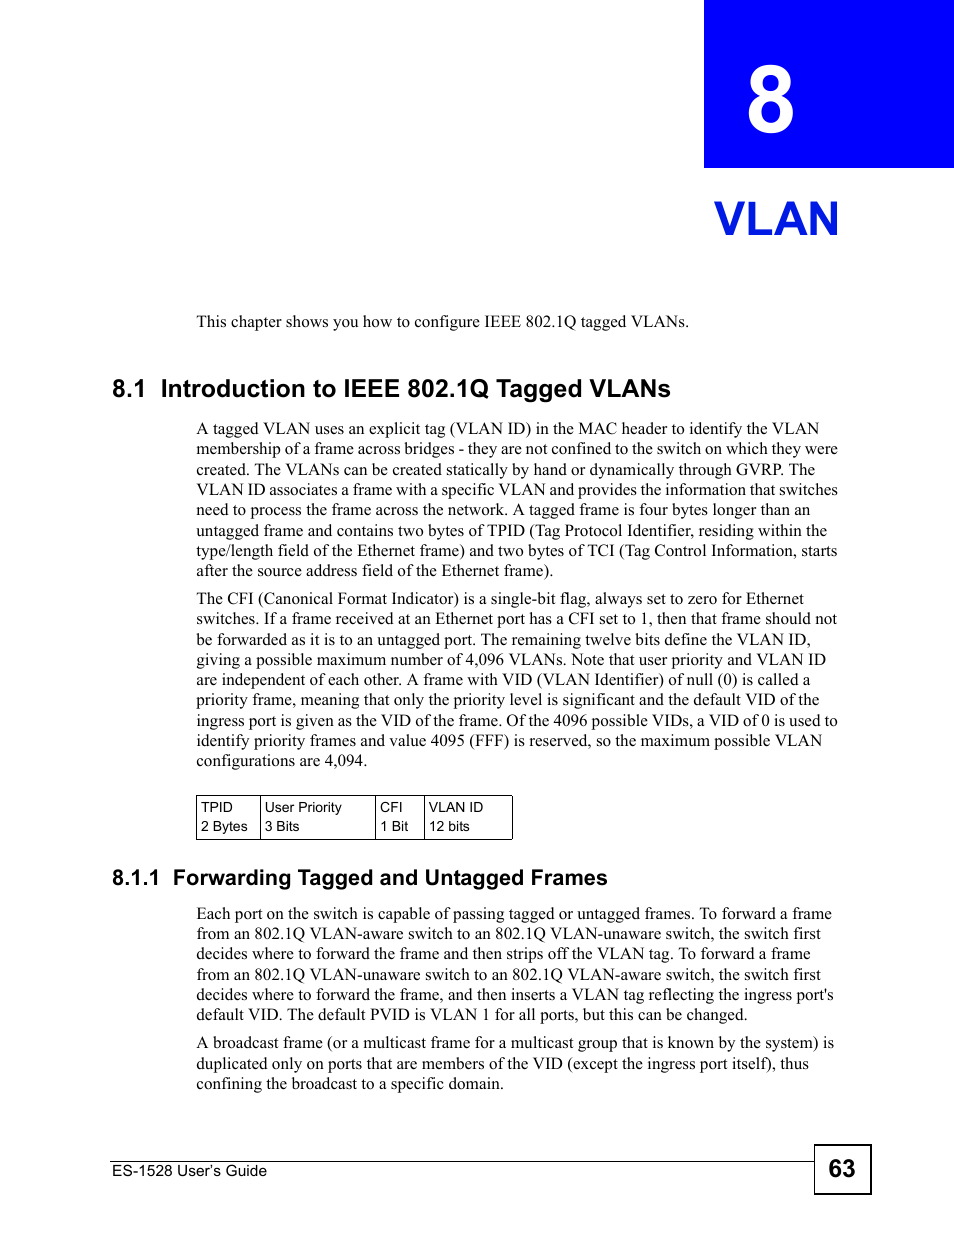 Vlan, 1 introduction to ieee 802.1q tagged vlans, 1 forwarding ...